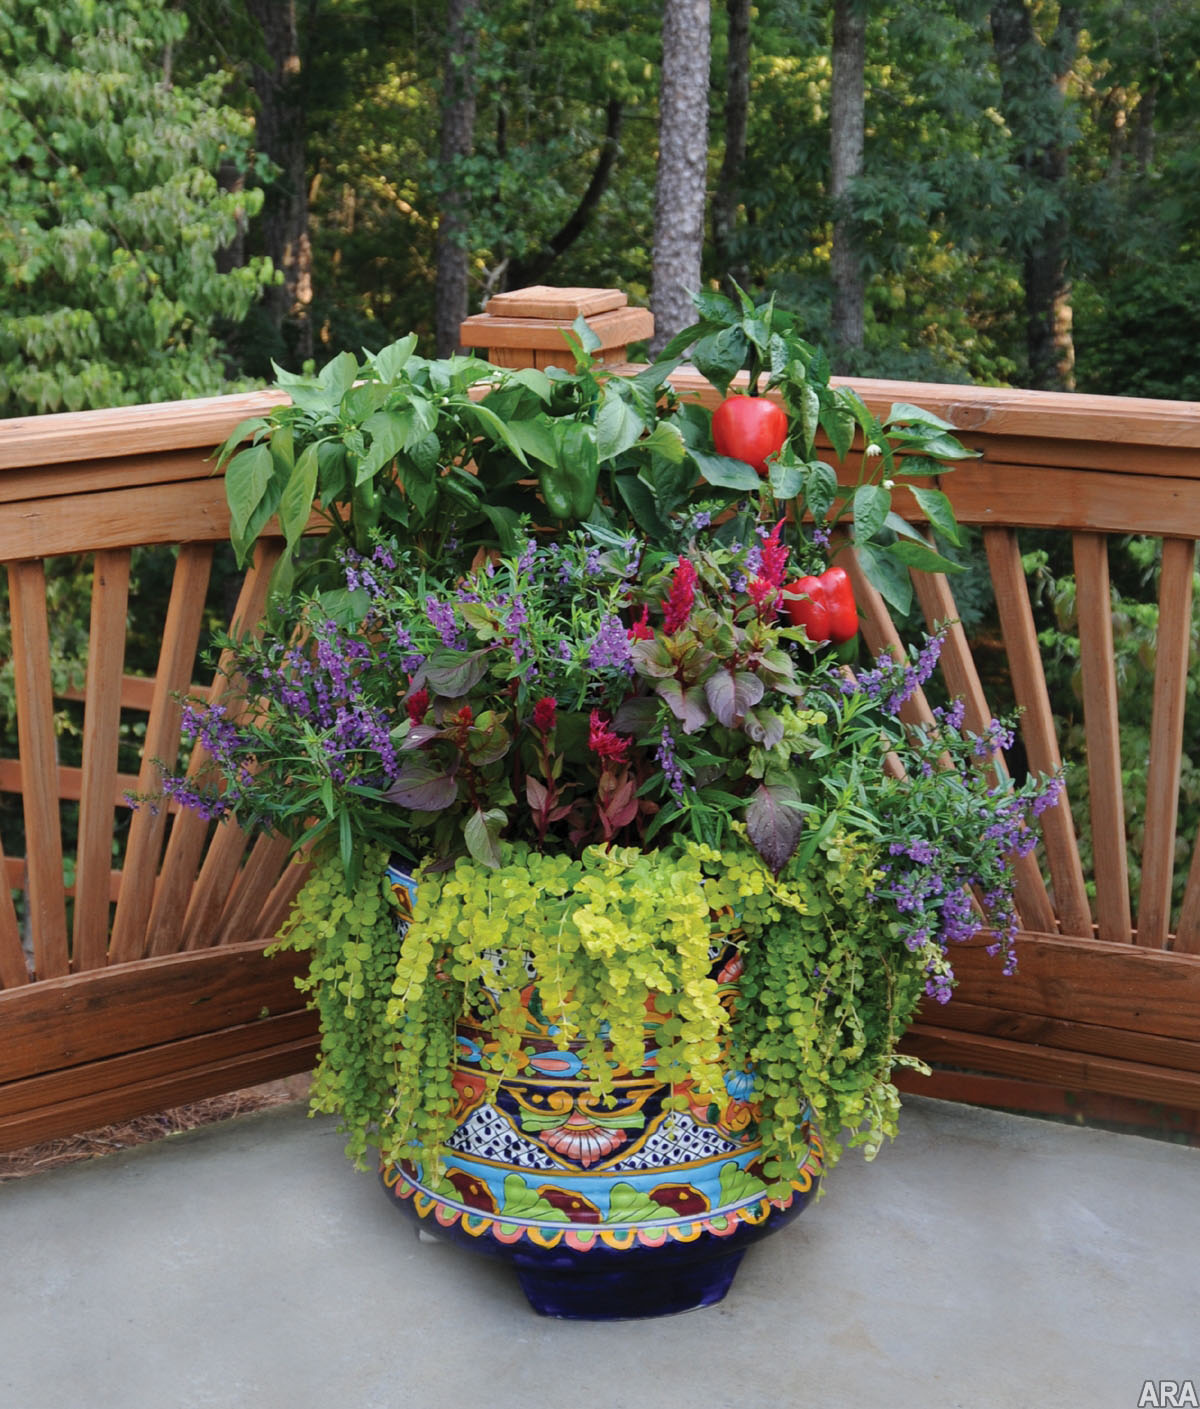 Practical Meets Pretty: Container Gardening For Beauty And